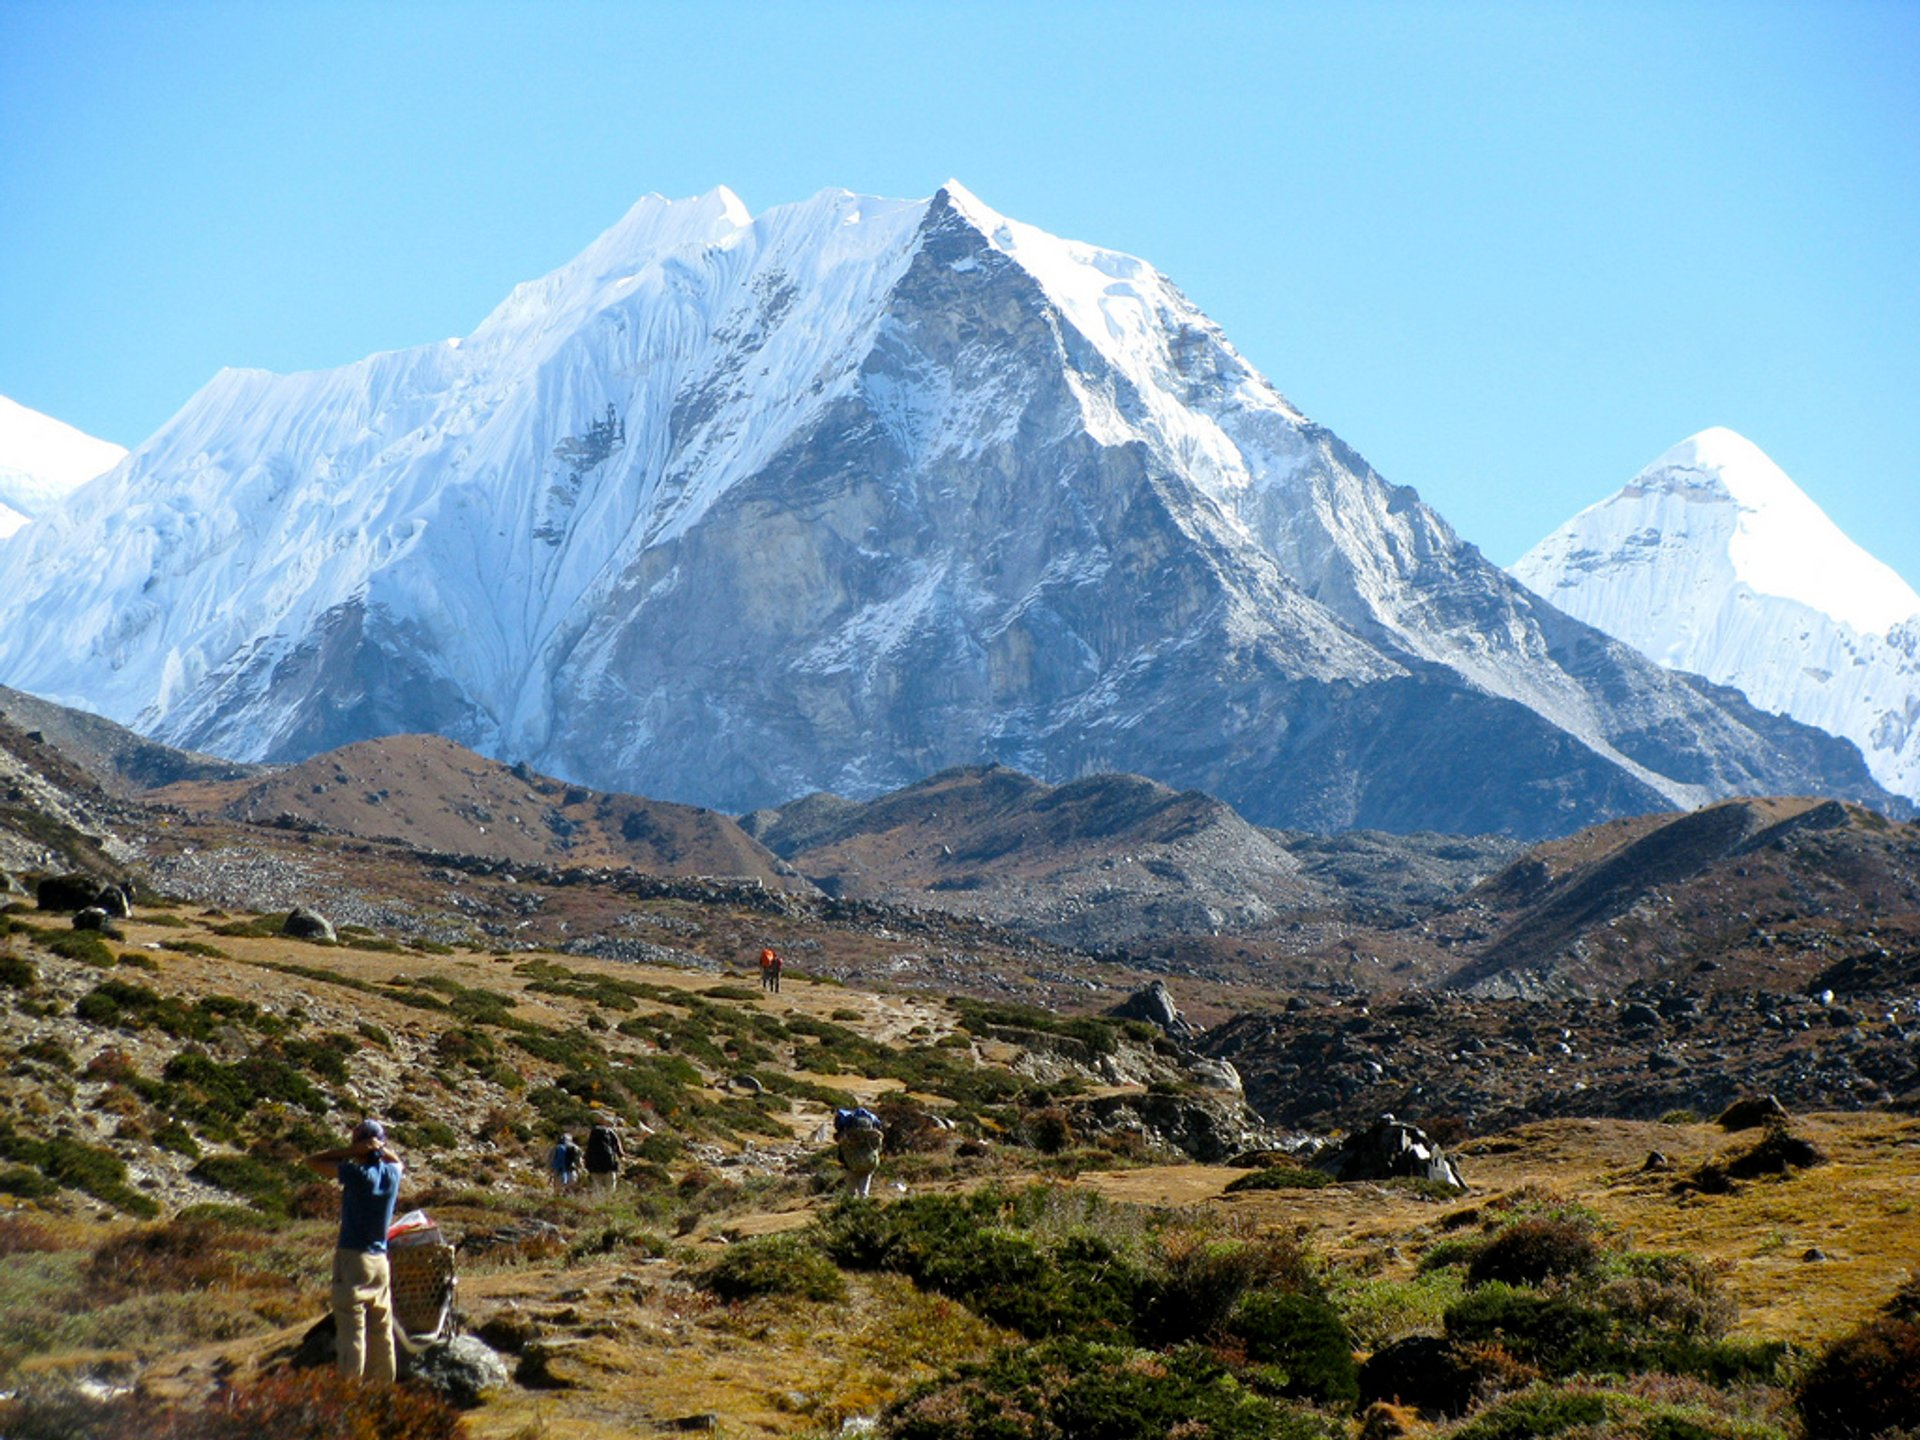 Trekking Season in Nepal - Best Season